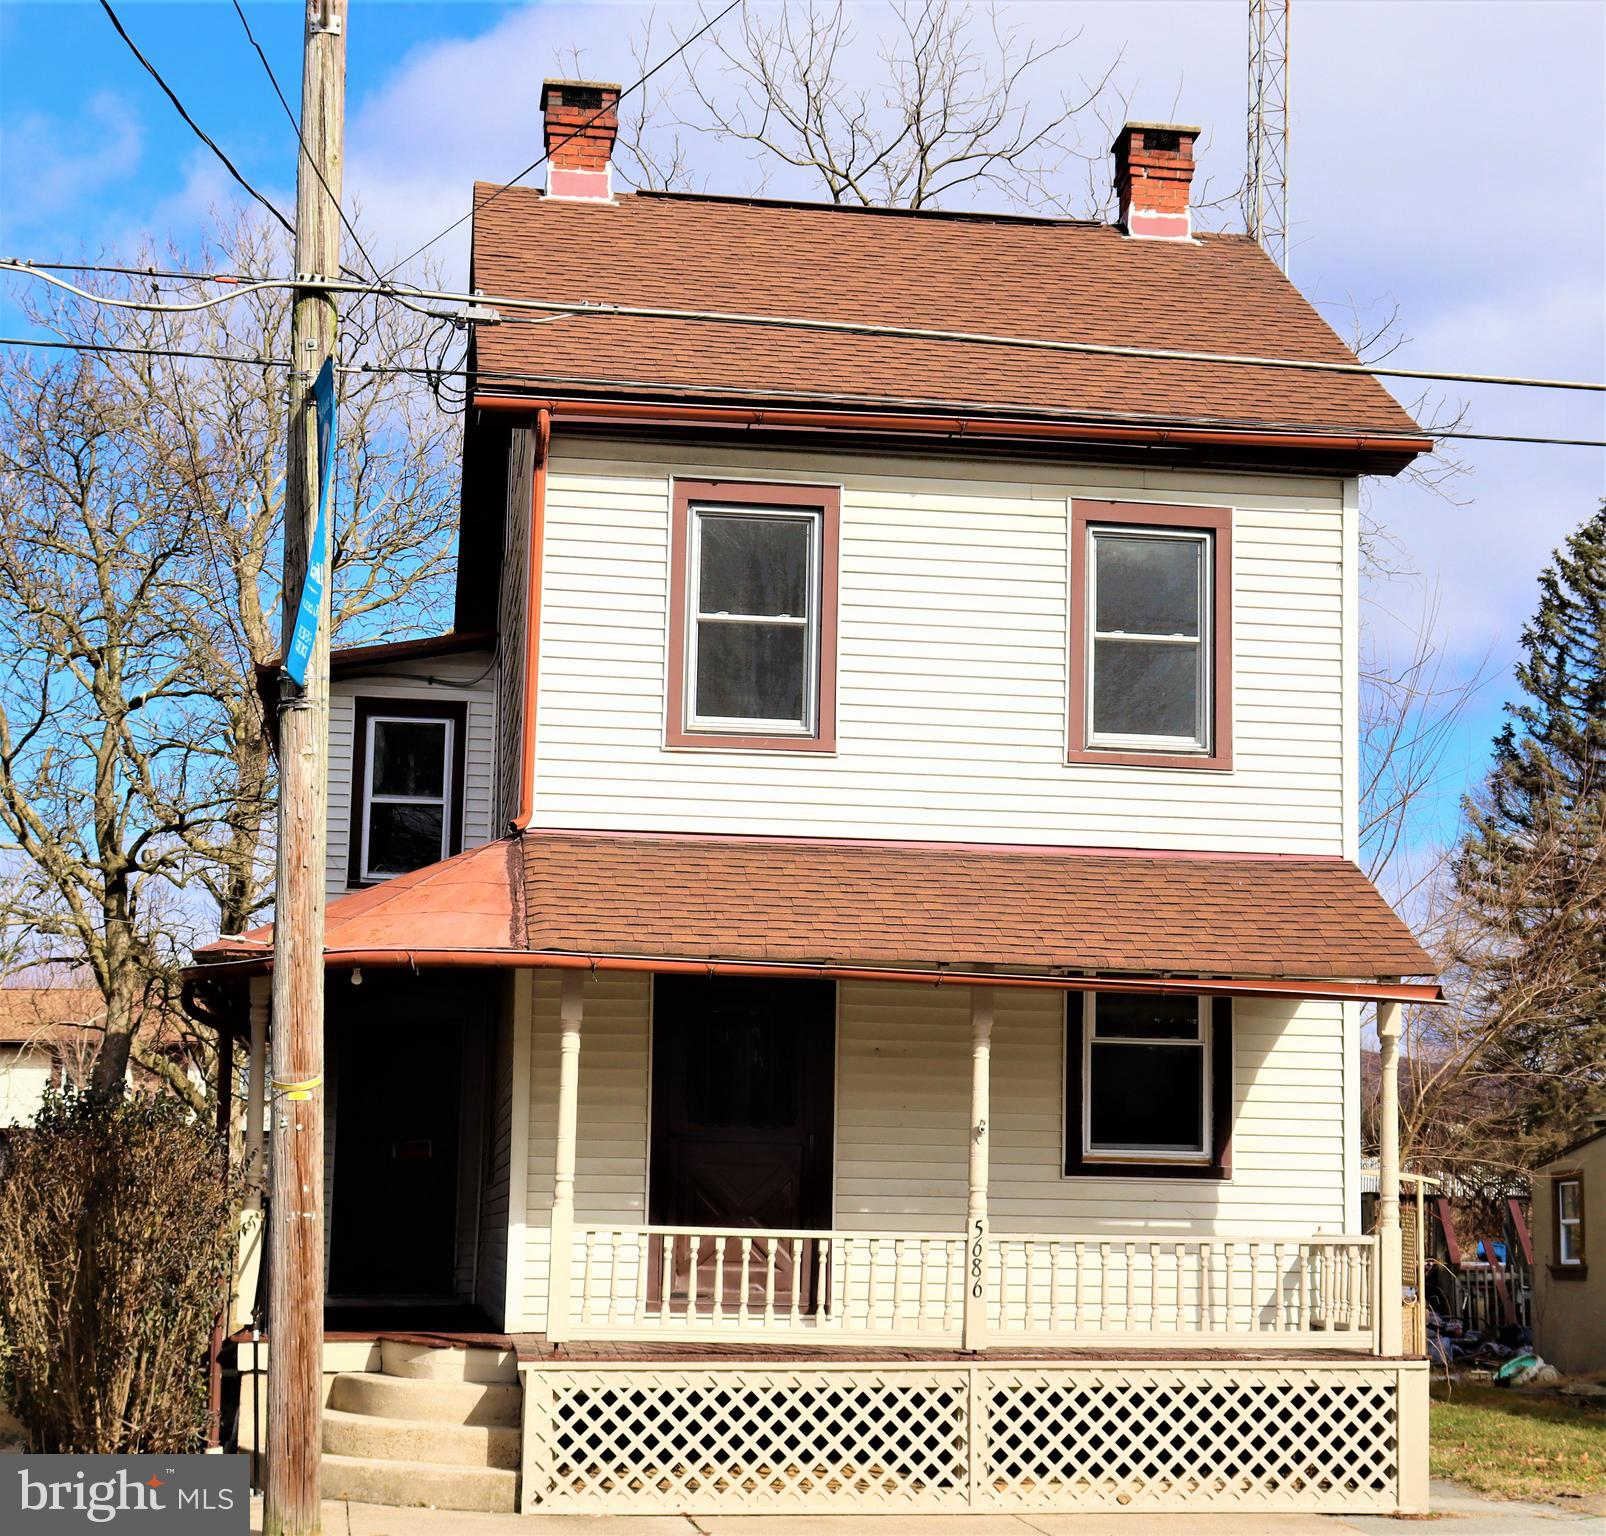 5686 OLD ROUTE 22, SHARTLESVILLE, PA 19554